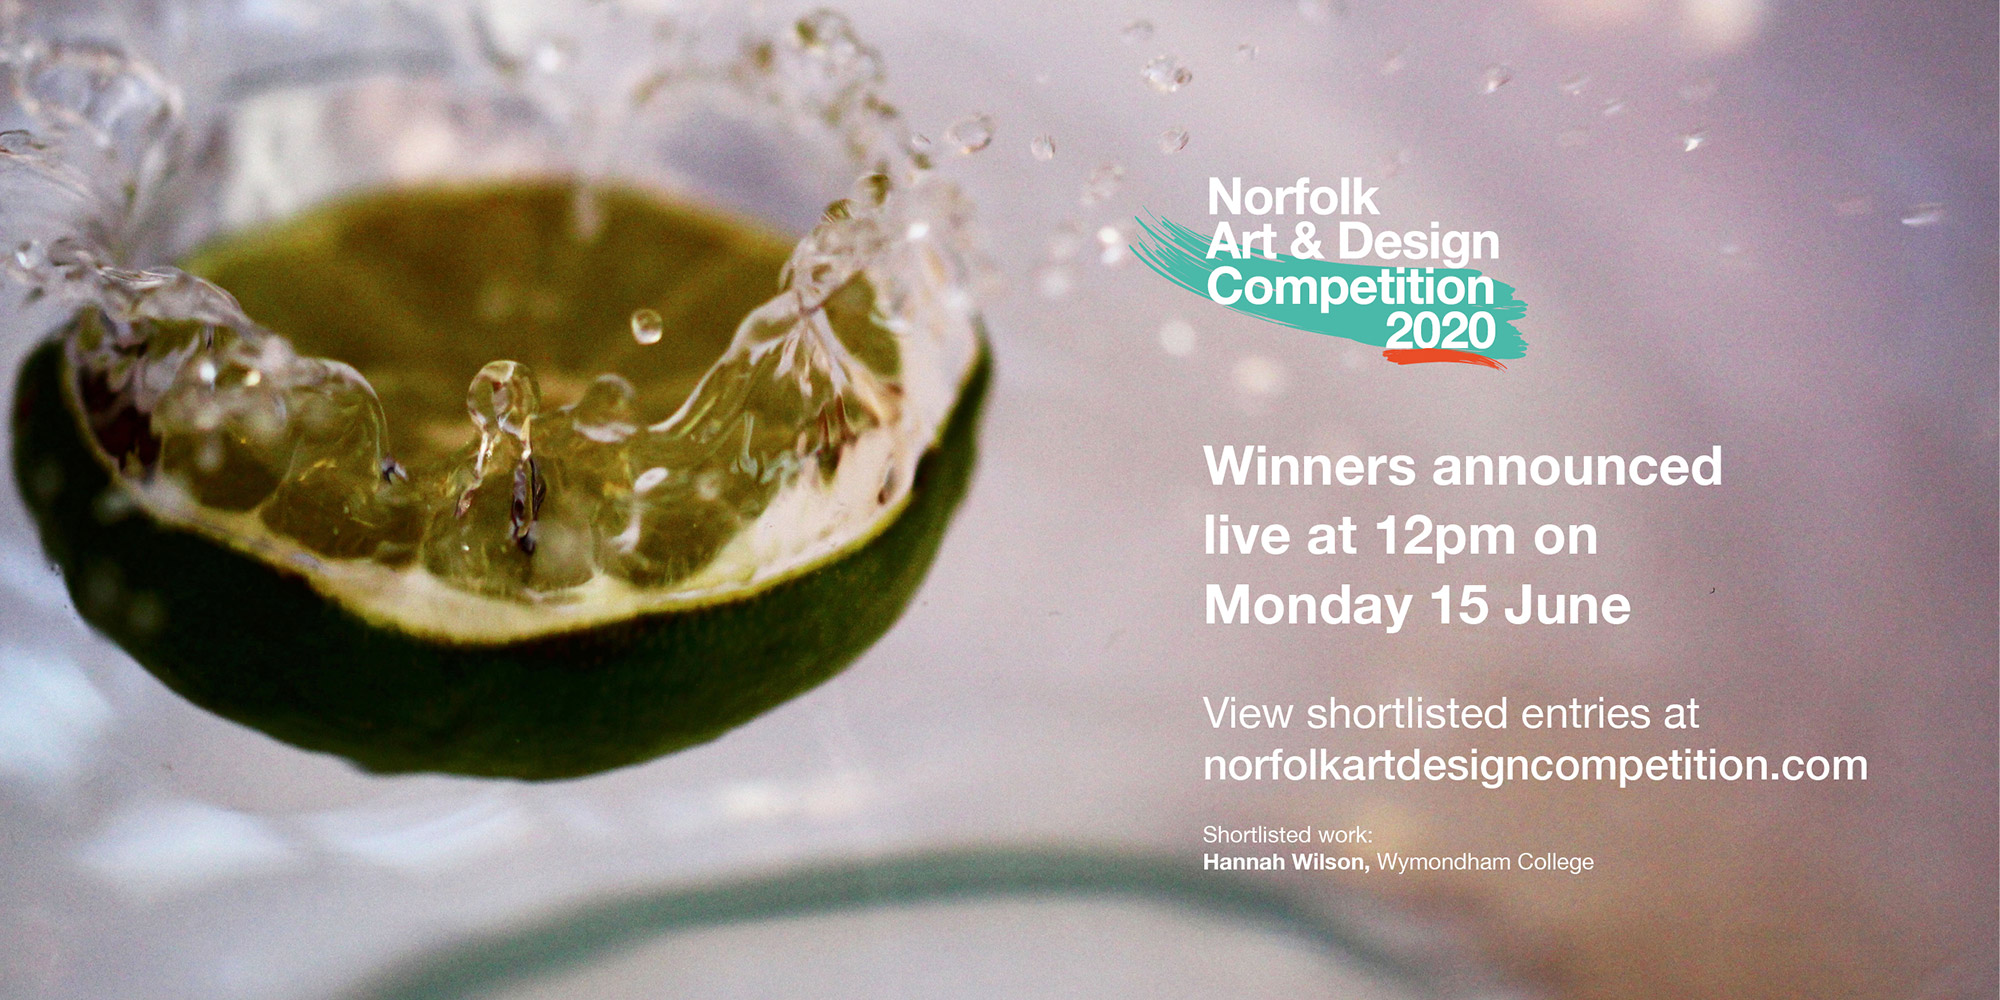 Norfolk Art and Design Competition 2020